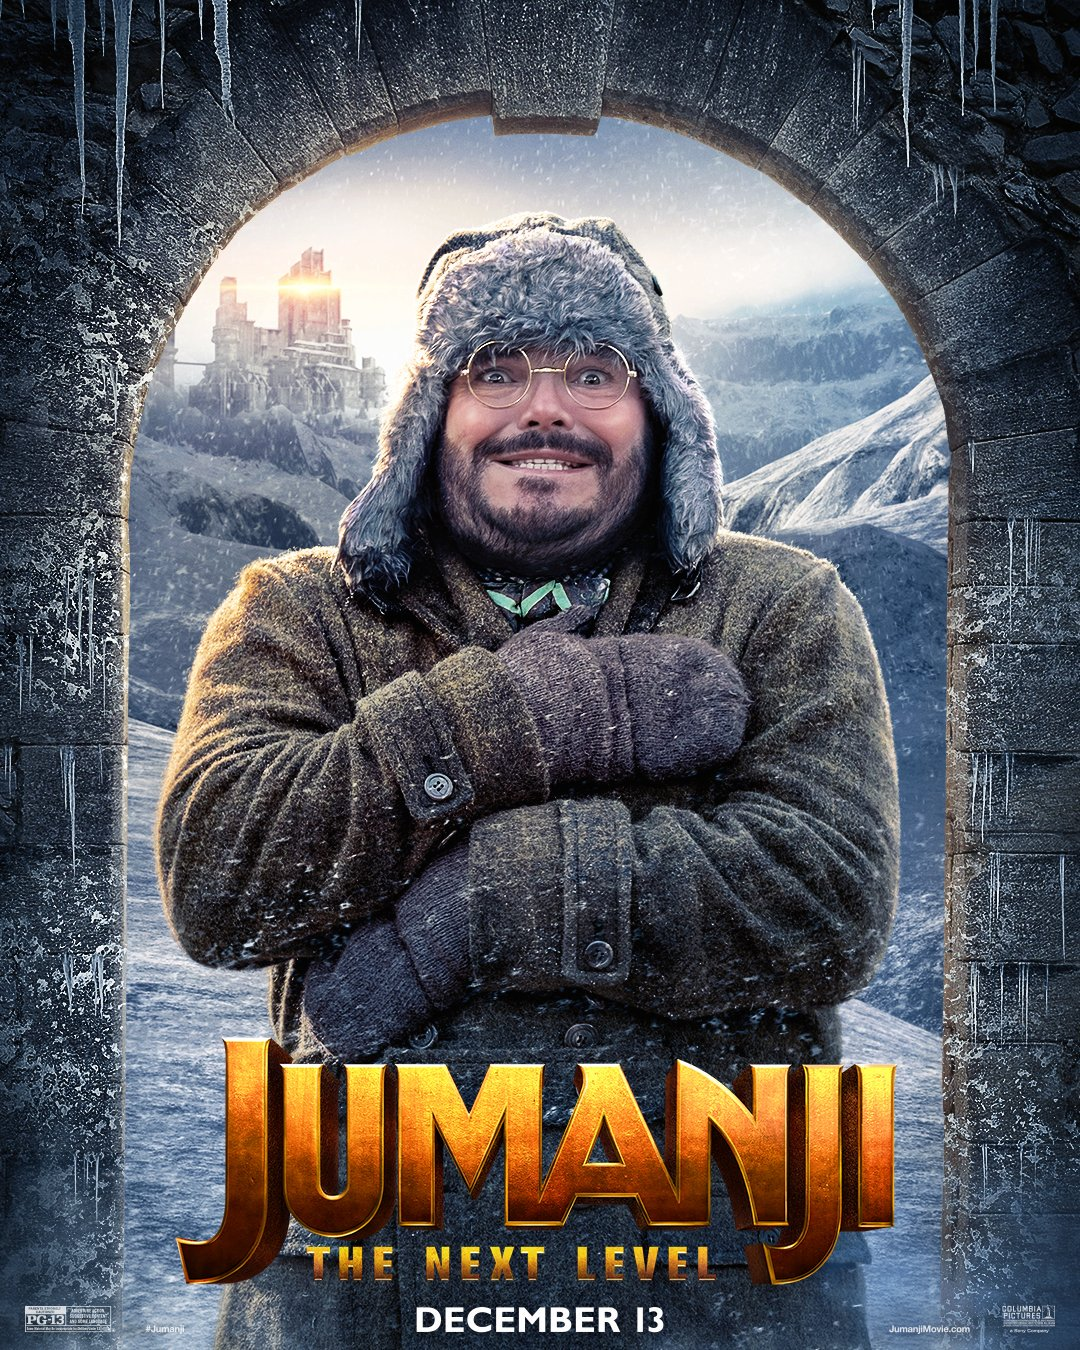 Jumanji: The Next Level (2019) Poster - Jack Black as Professor Shelly Oberon